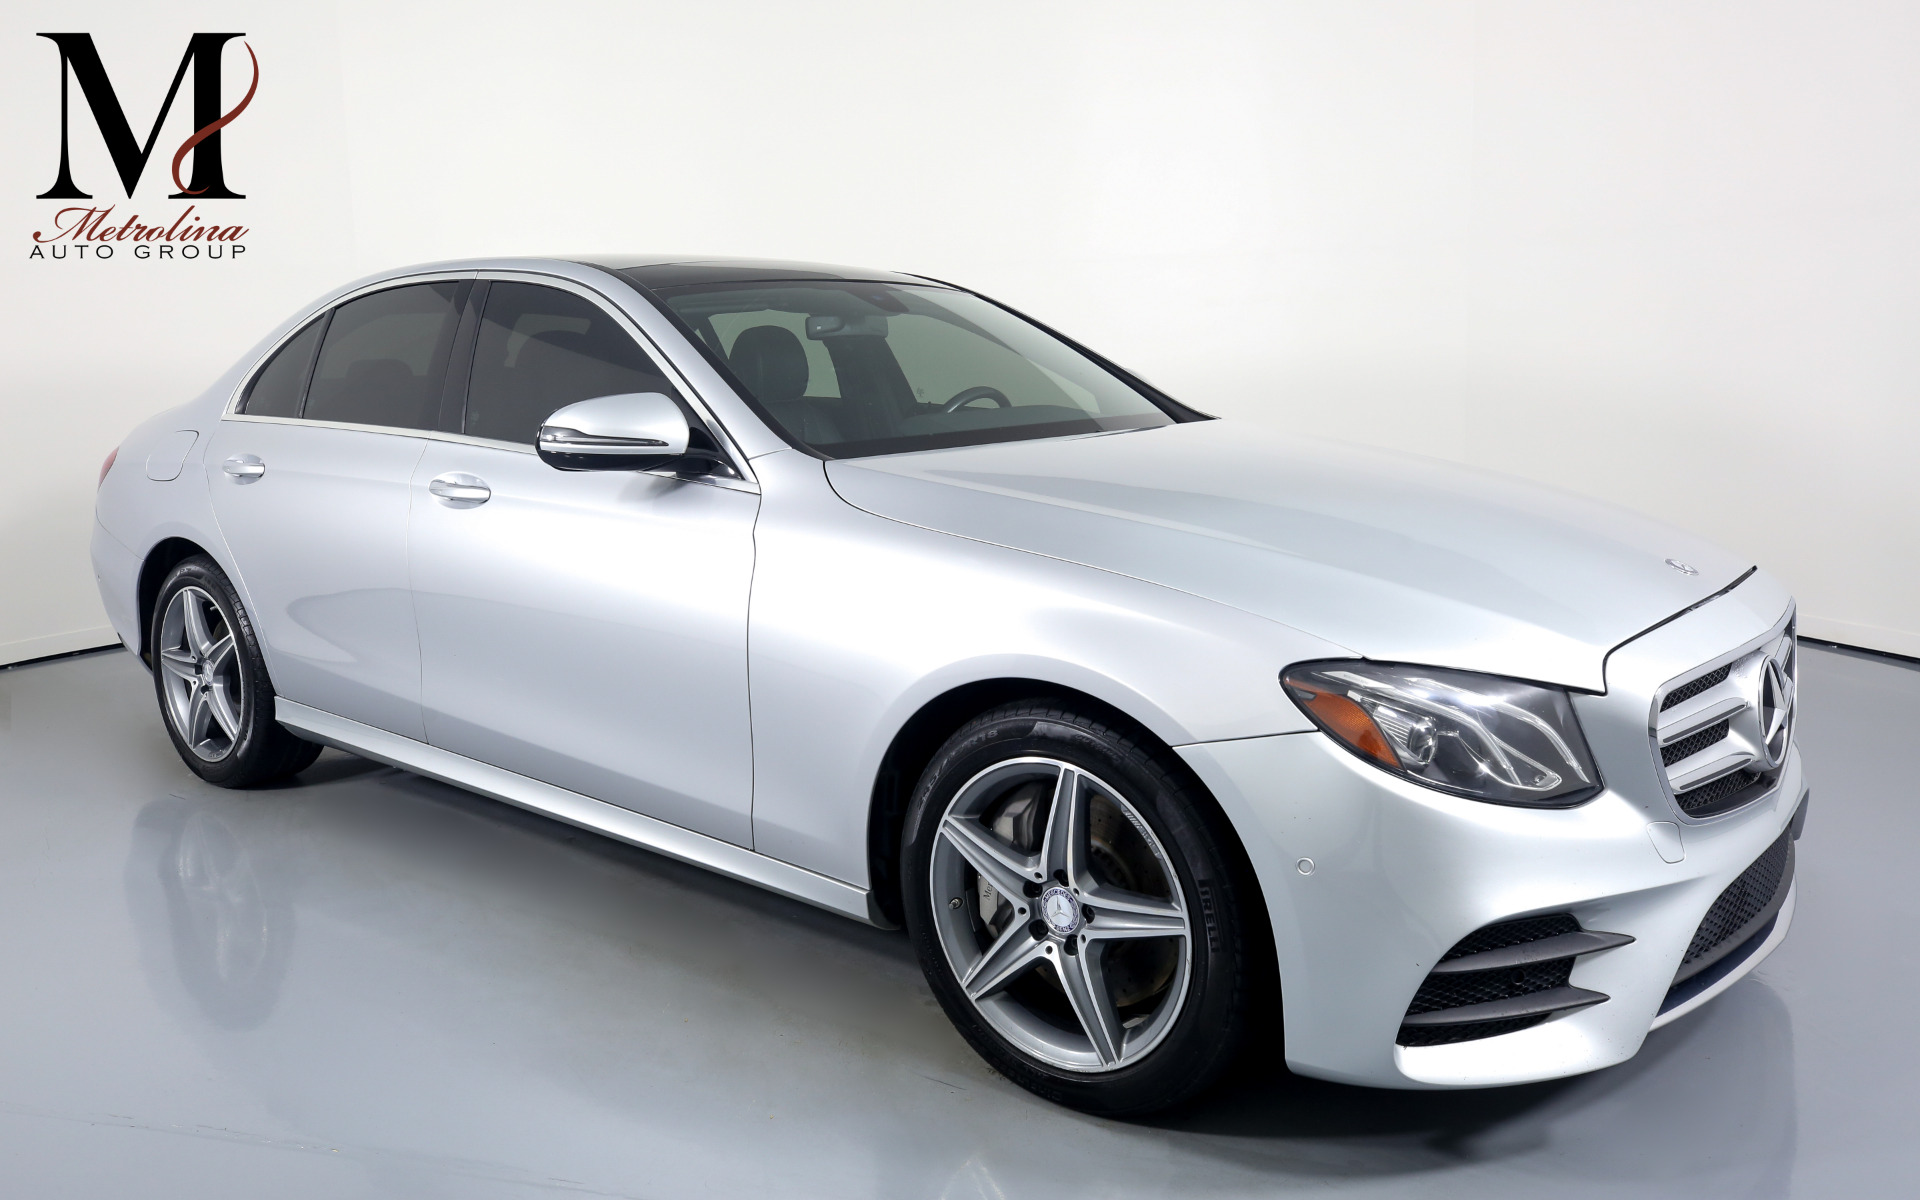 Used 2017 Mercedes-Benz E-Class E 300 4MATIC for sale $31,996 at Metrolina Auto Group in Charlotte NC 28217 - 1